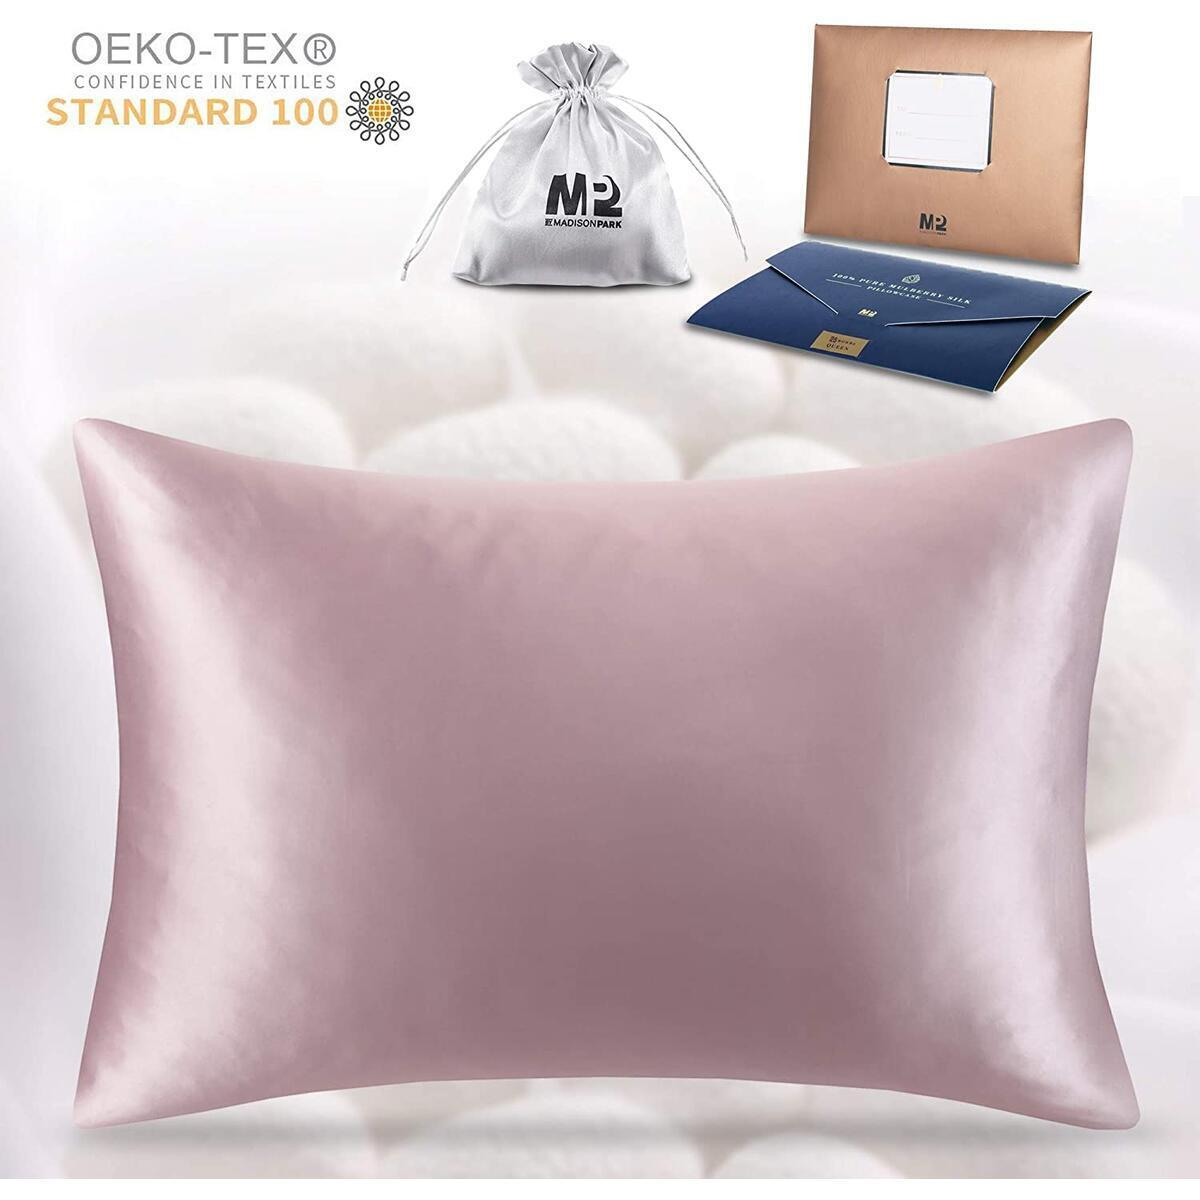 Silk Pillow Cases Standard Size | 100% Mulberry Worm, Both Sides 19 Momme 600 Thread Count Pillow Cover for Hair and Skin w/ Hidden Zipper - 1 Pack, Blush